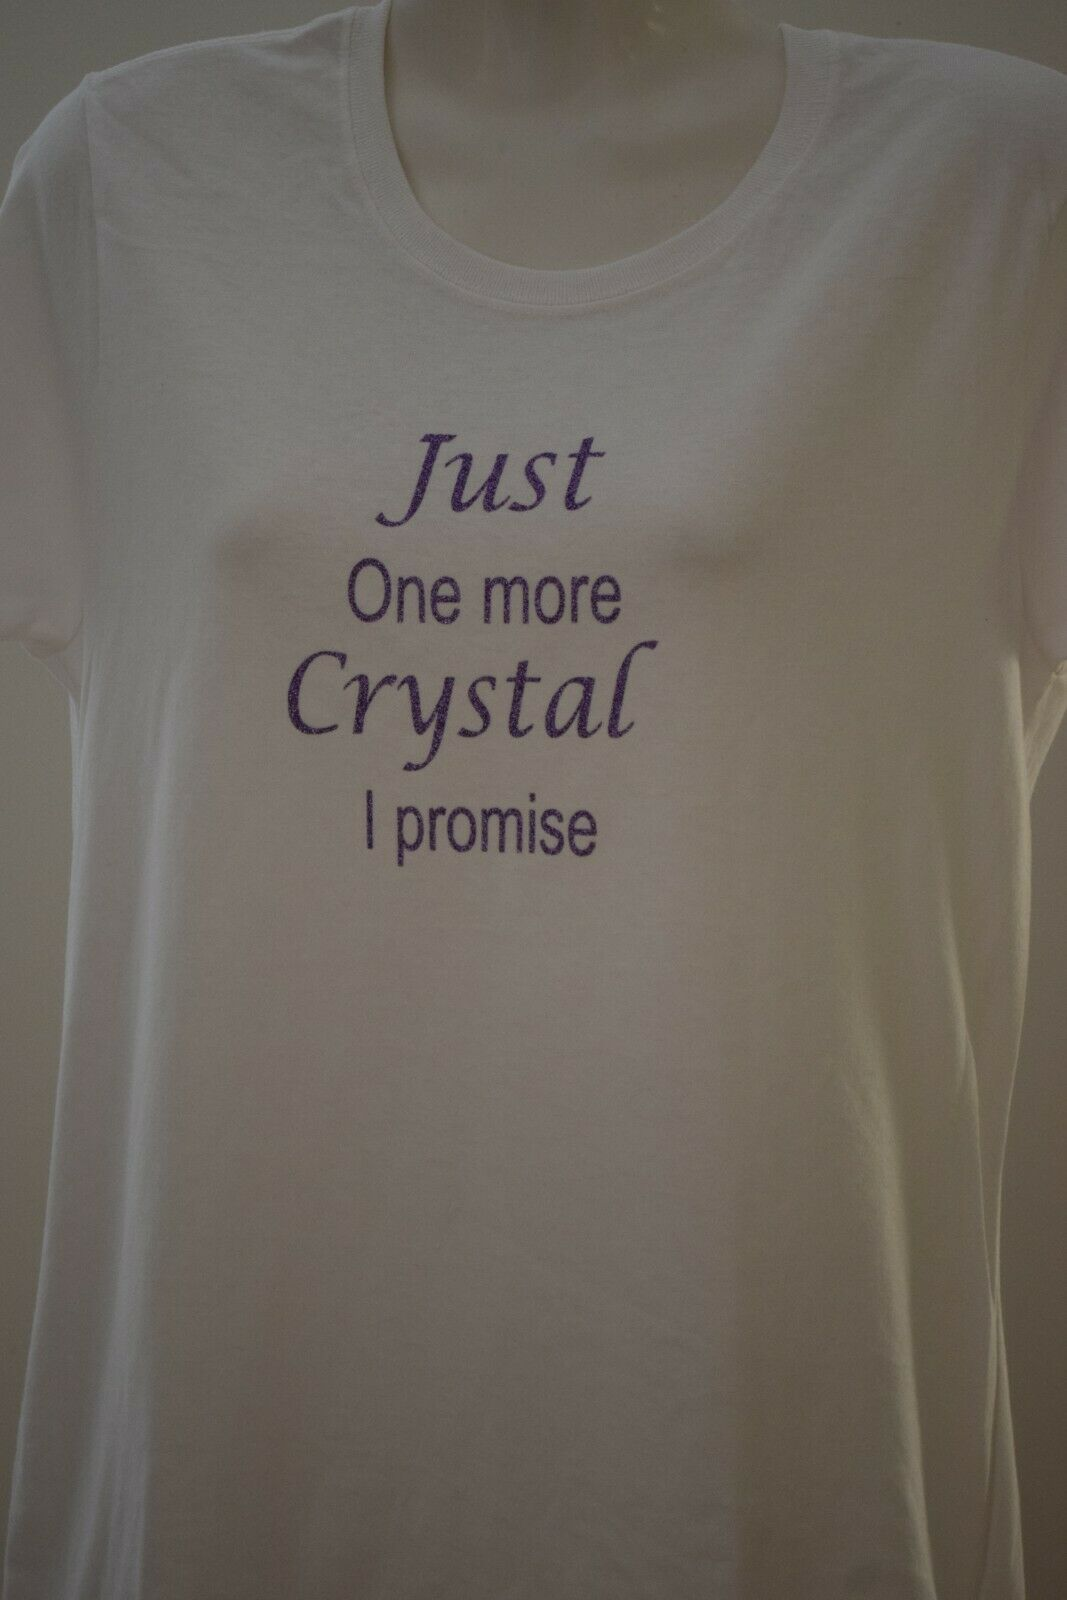 Just one more crystal cotton t-shirt ladies top shirt women's glitter